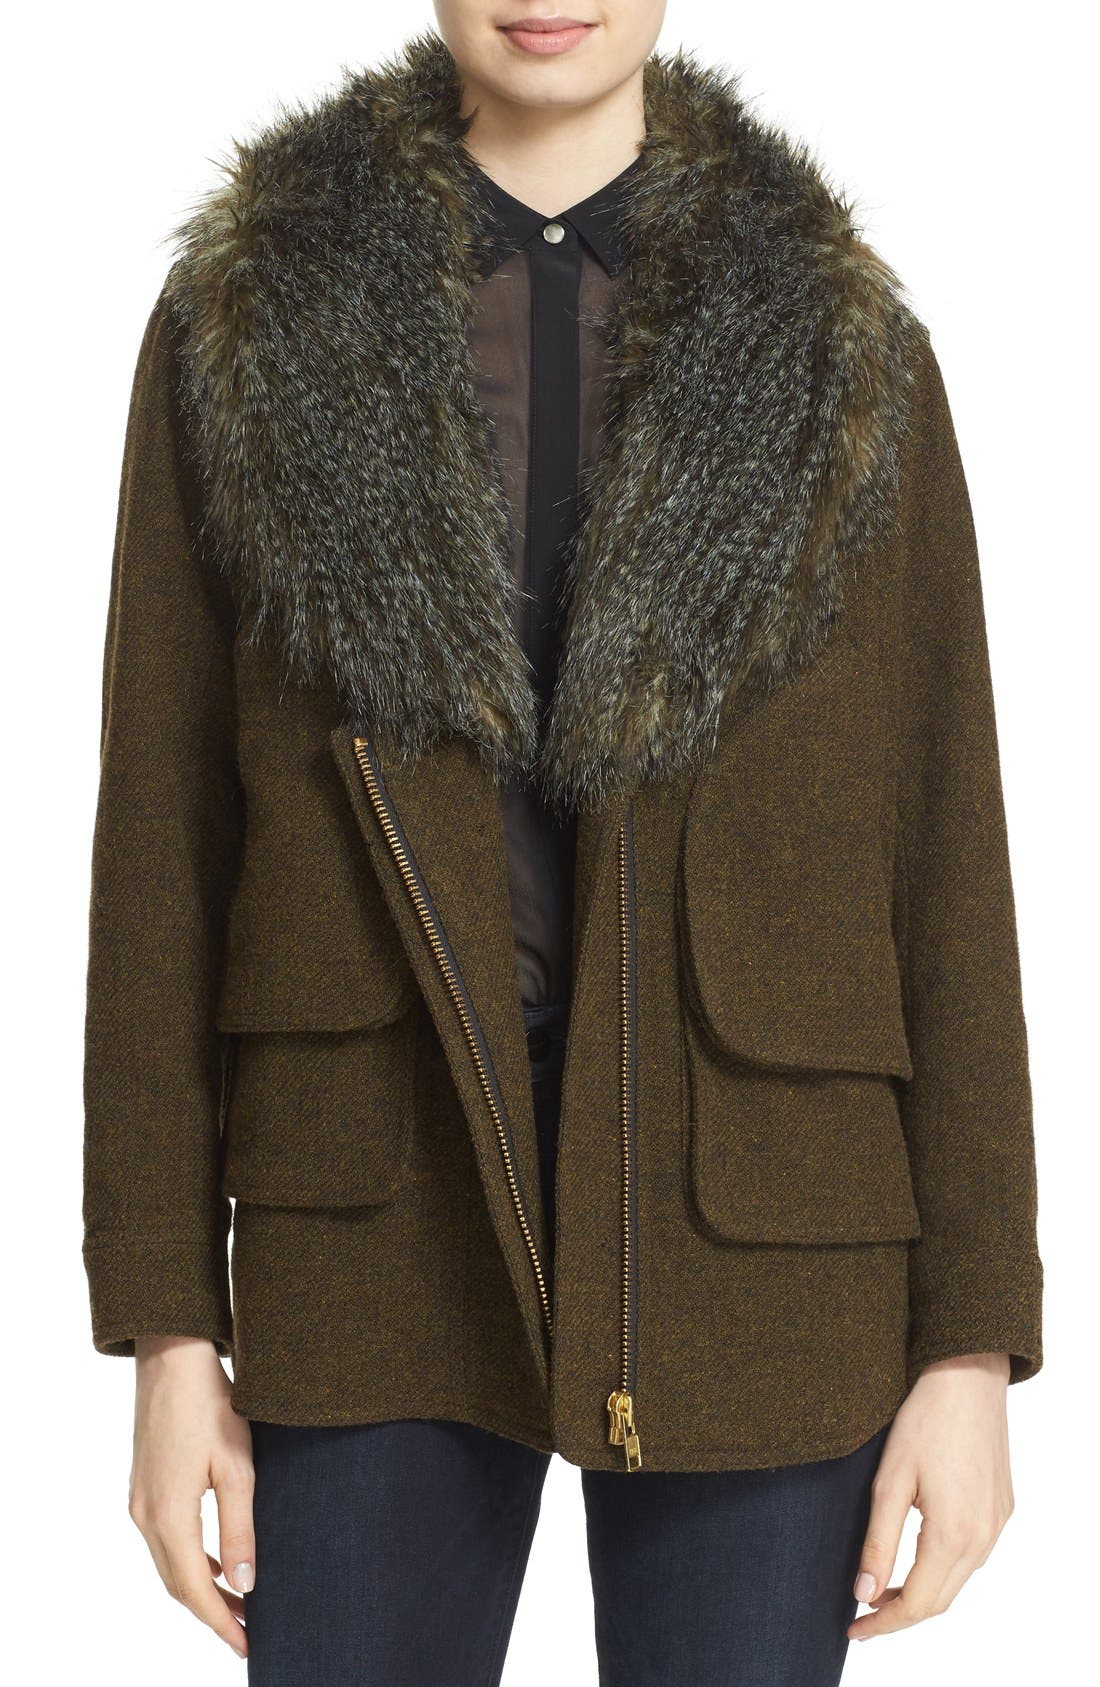 SMYTHE 'Flak' Wool Blend Jacket with Removable Faux Fur Collar, Main, color, 300